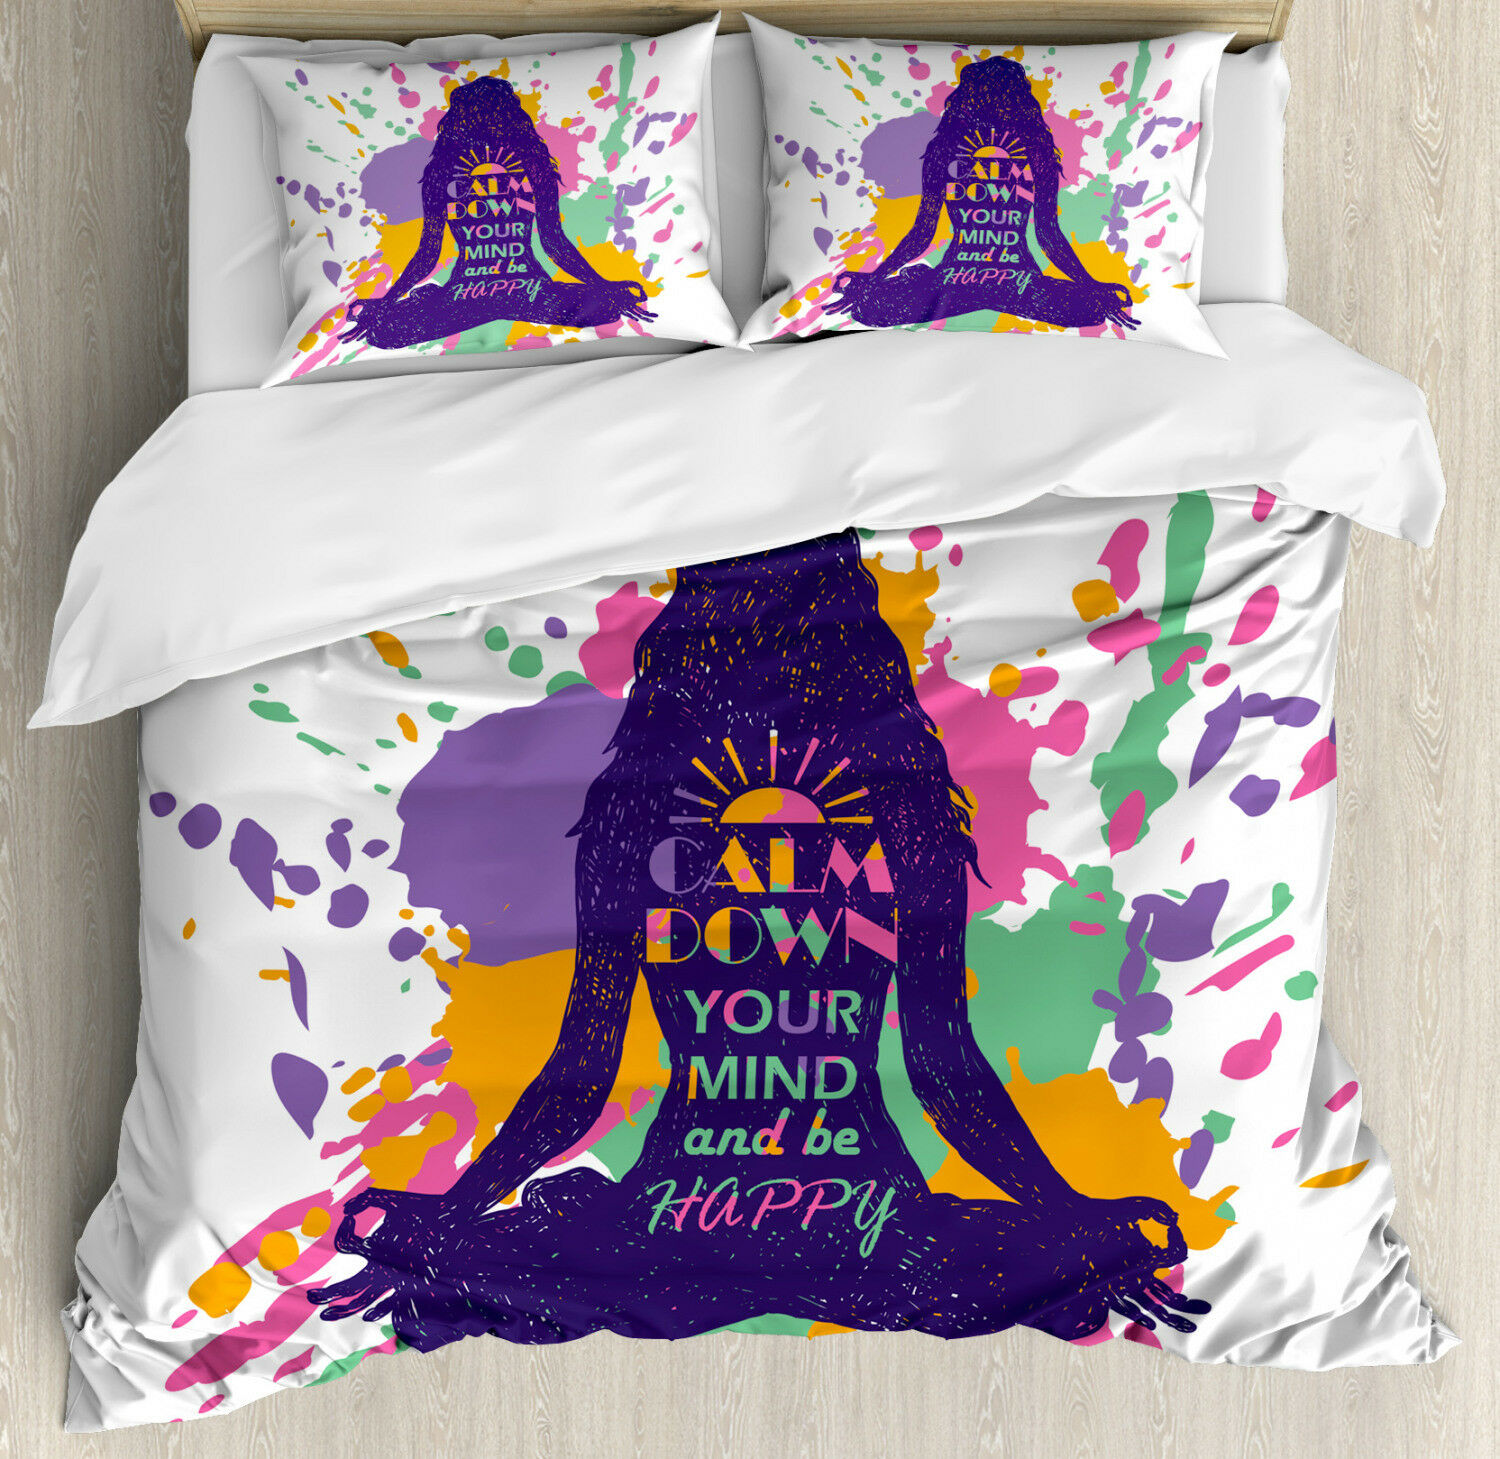 Modern Duvet Cover Set with Pillow Shams Happy Quote Calm Down Print